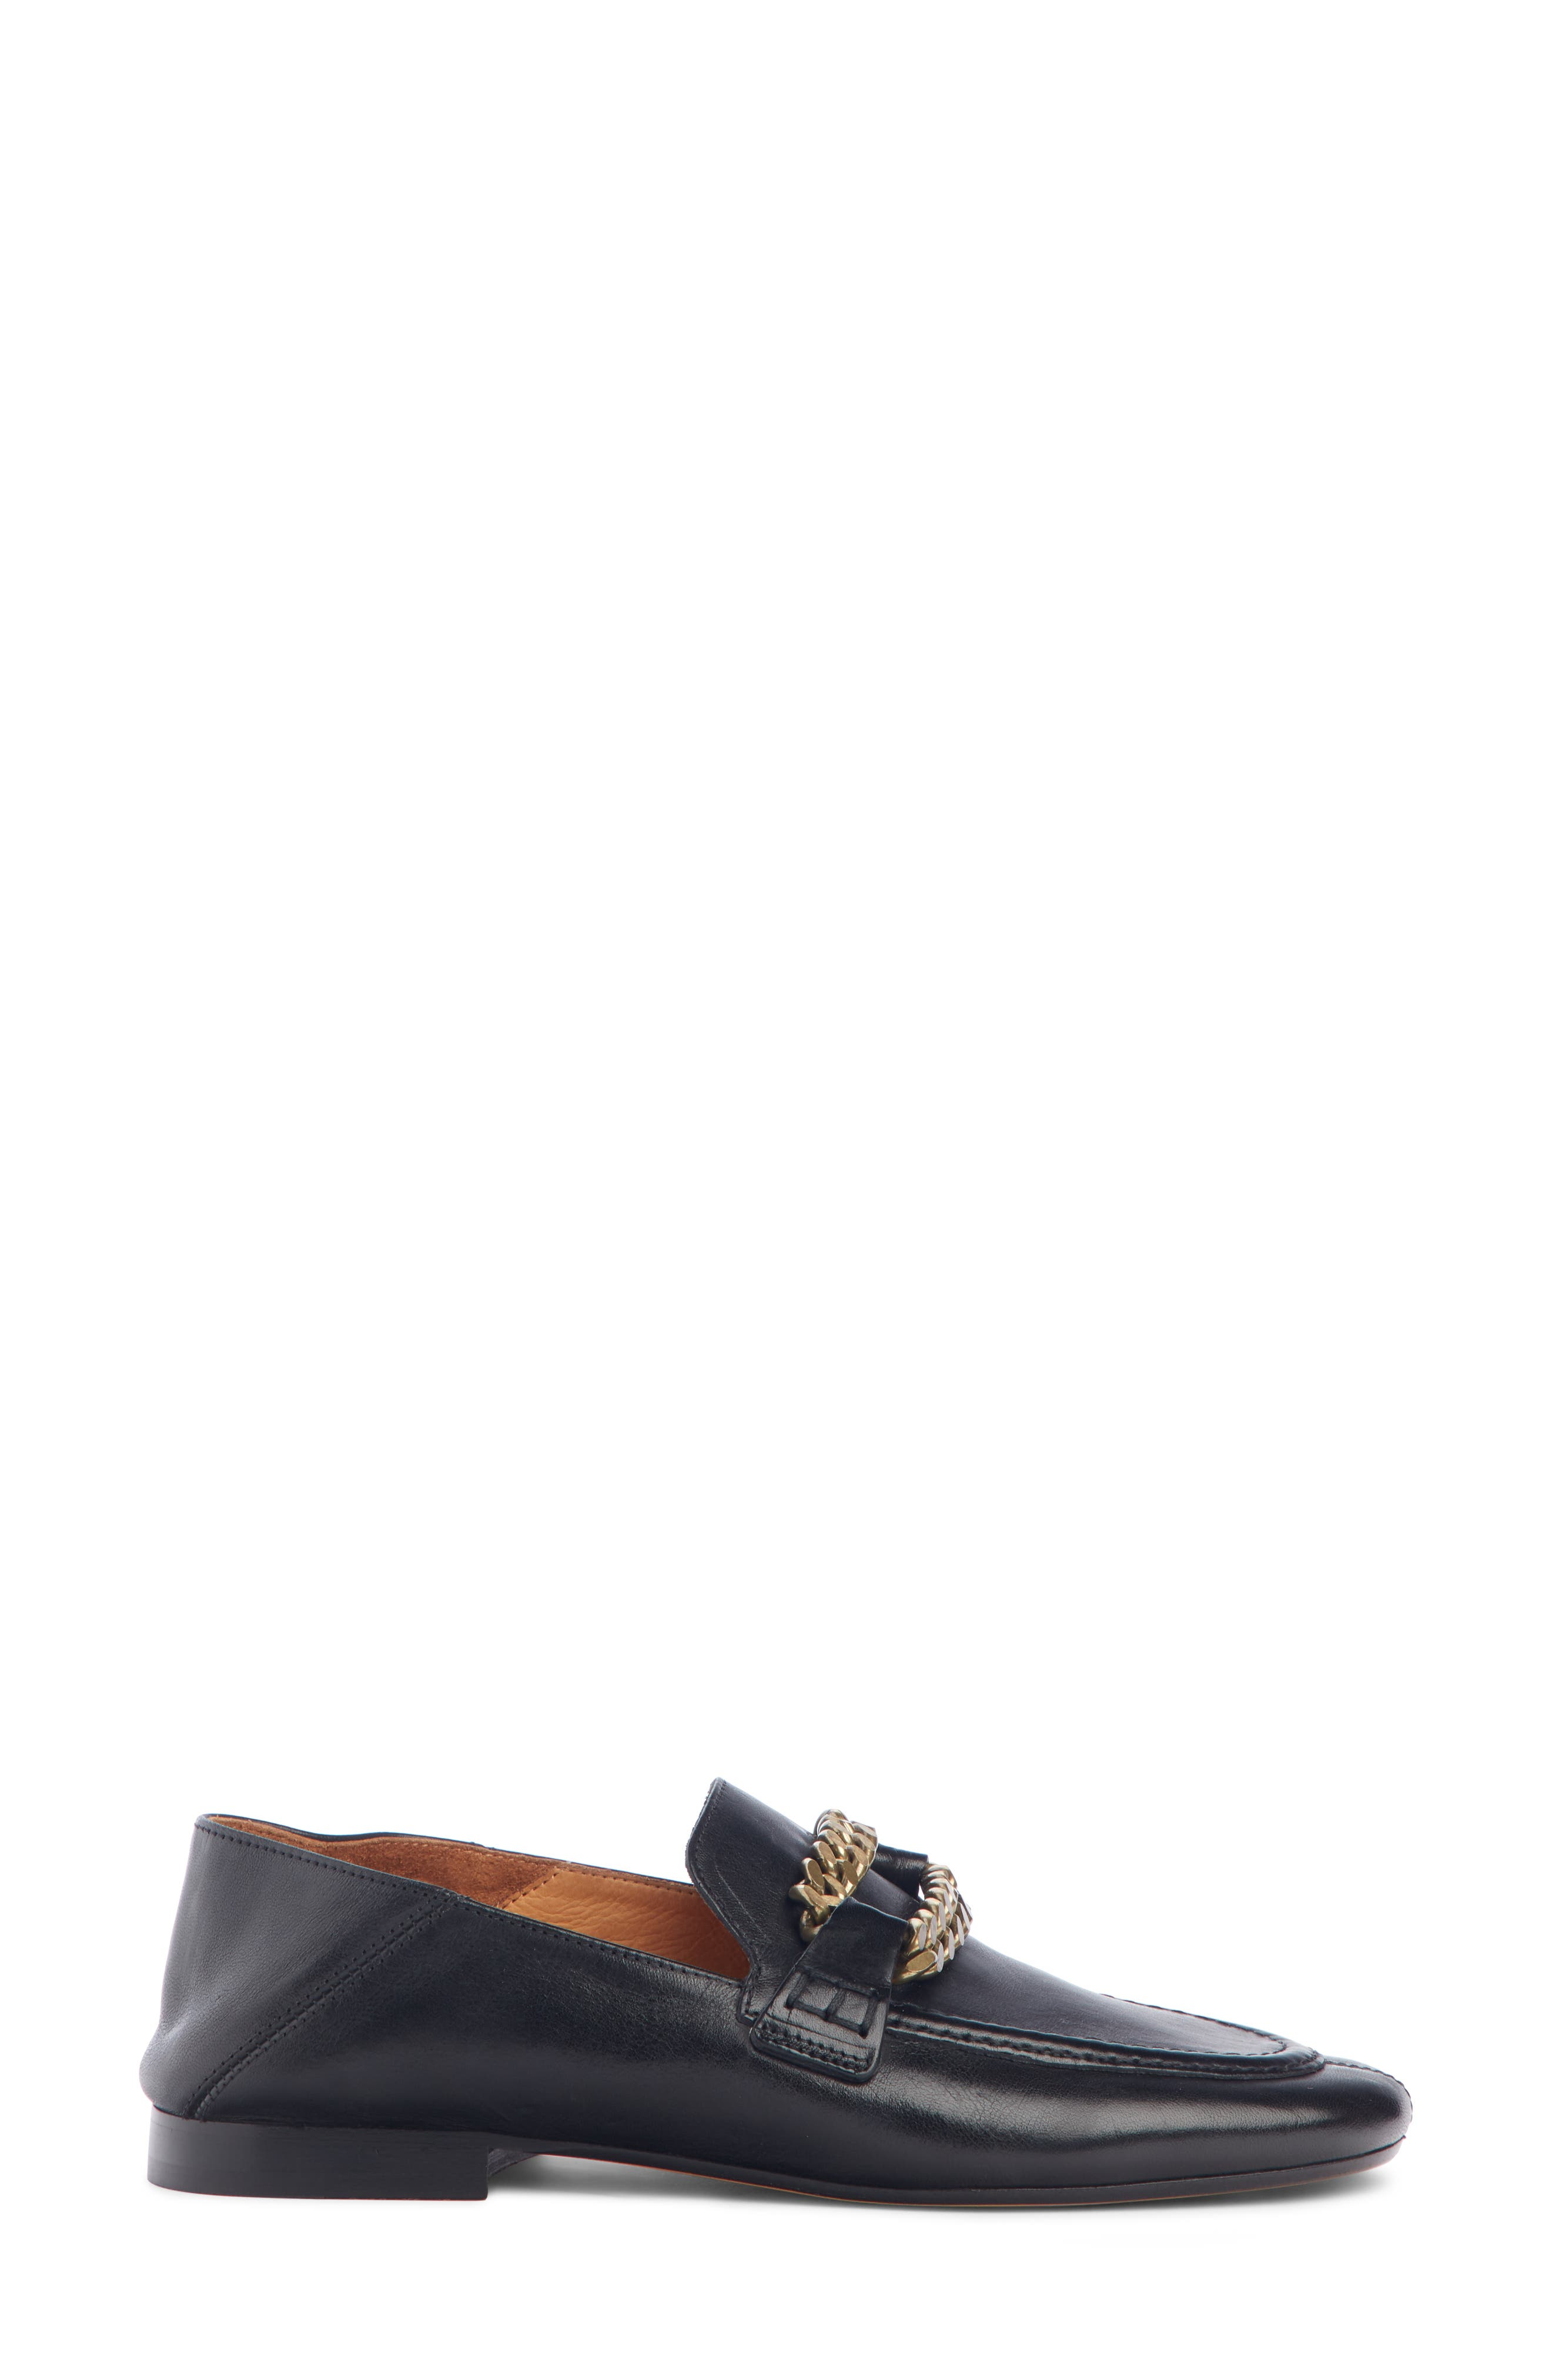 ISABEL MARANT,                             Firlee Chain Convertible Loafer,                             Alternate thumbnail 2, color,                             BLACK